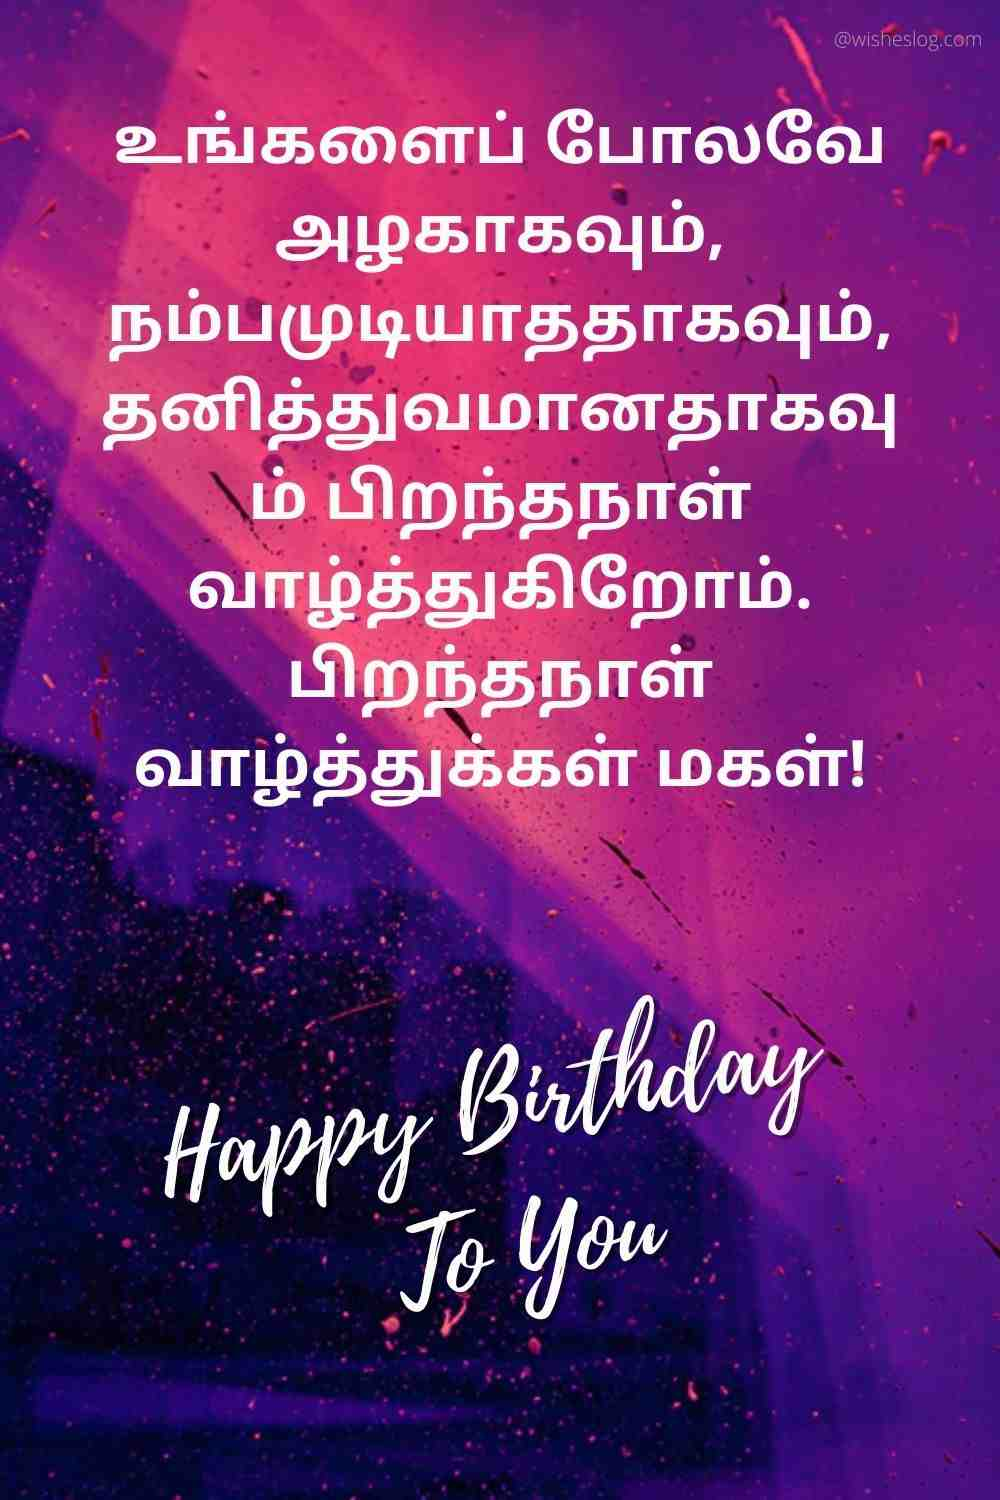 happy birthday images in tamil for daughter